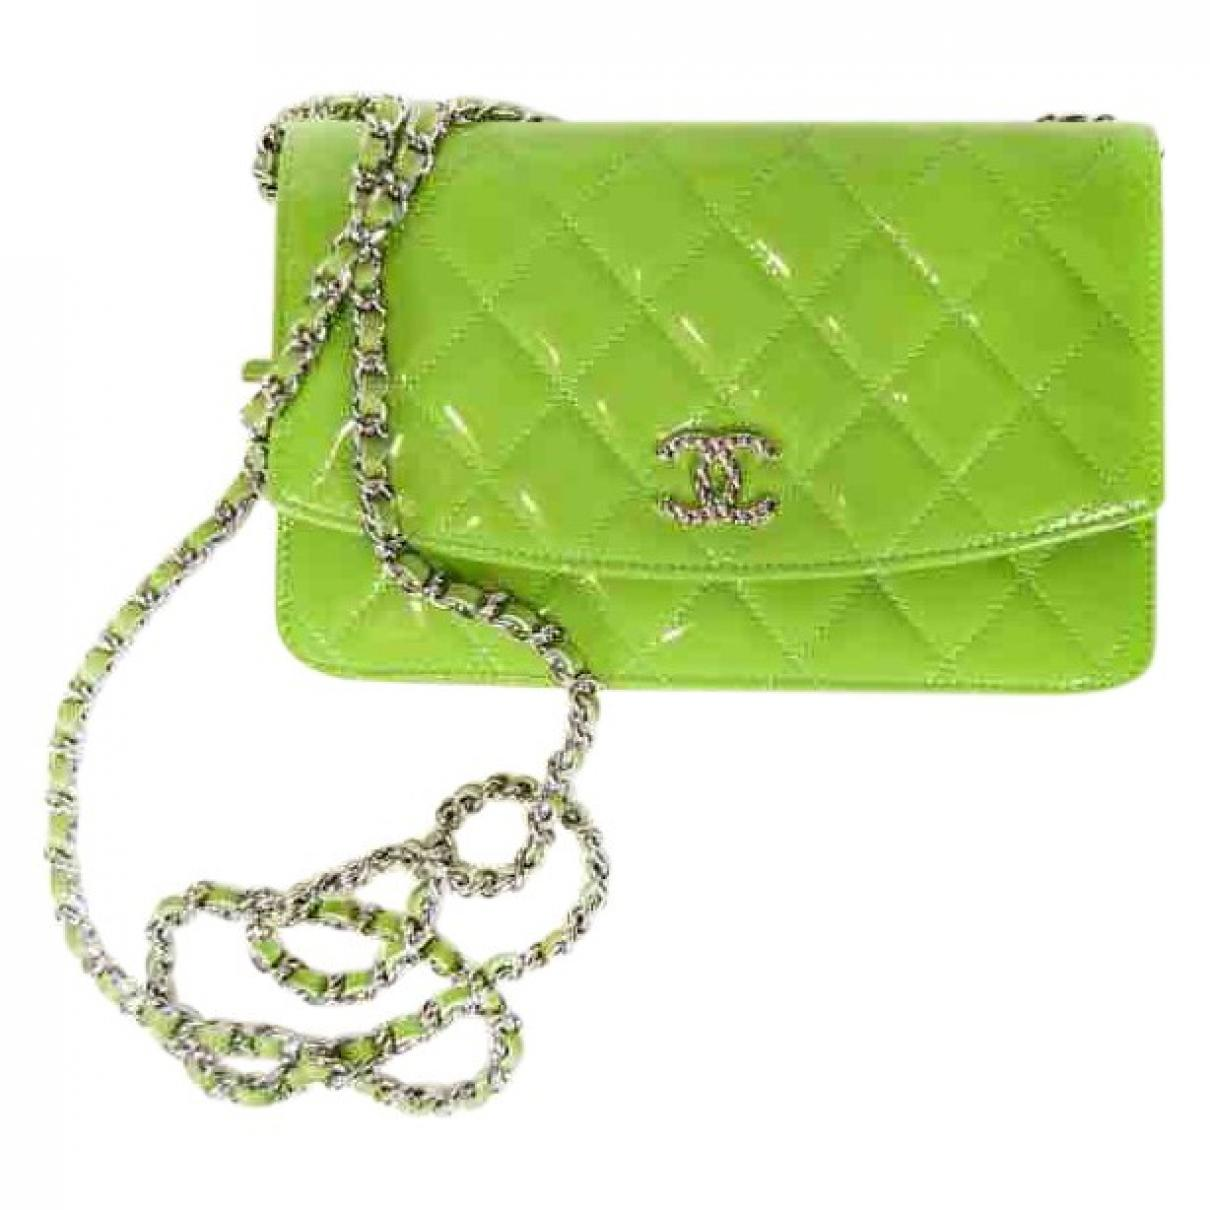 7d3848d48c0c73 Chanel Wallet On Chain Patent Leather Bag in Green - Lyst